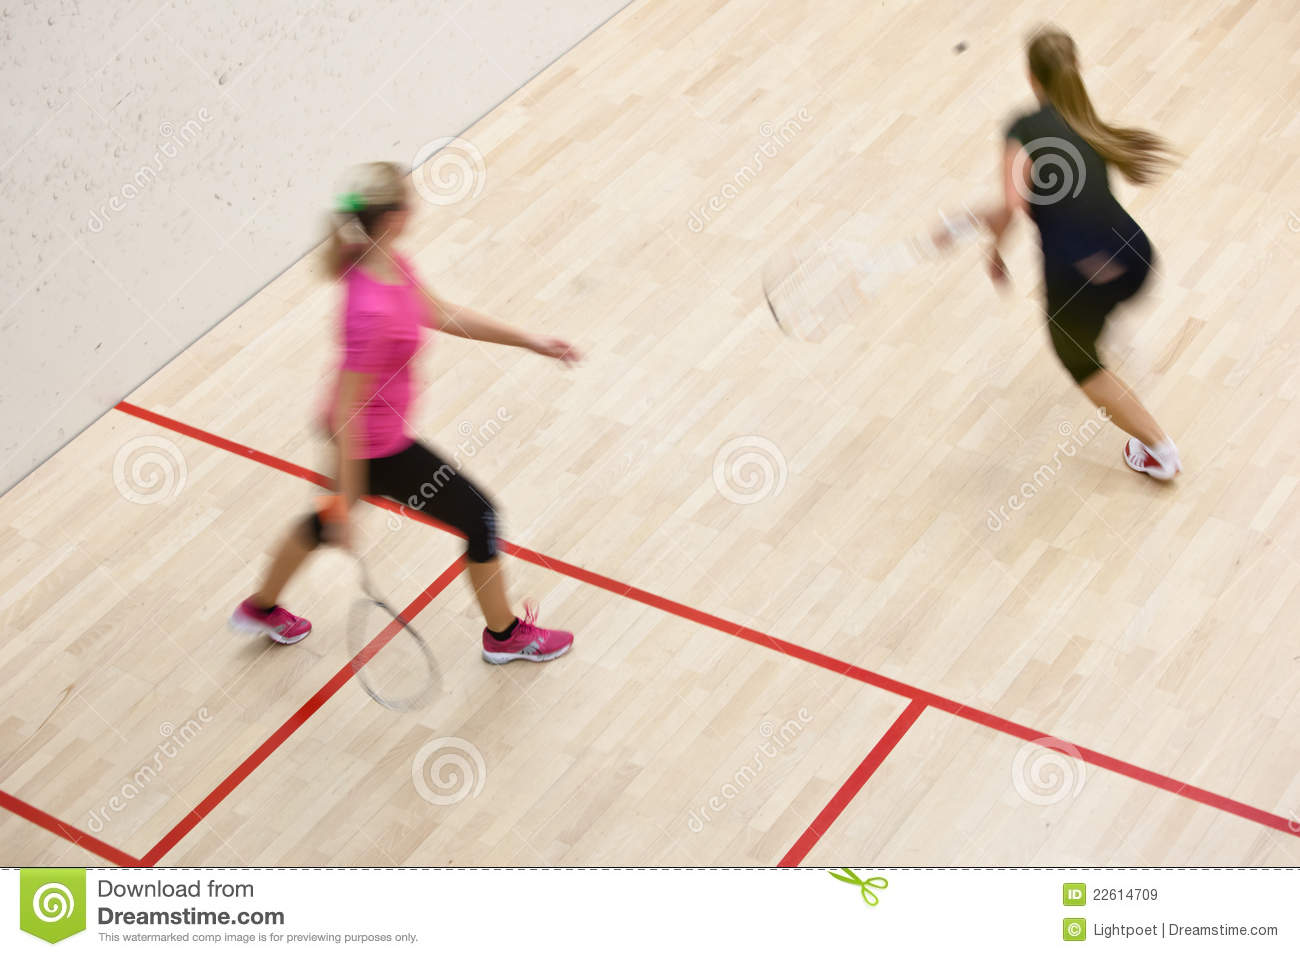 Two Female Squash Players In Fast Action On A Squash Court Royalty Free Stock Images Image